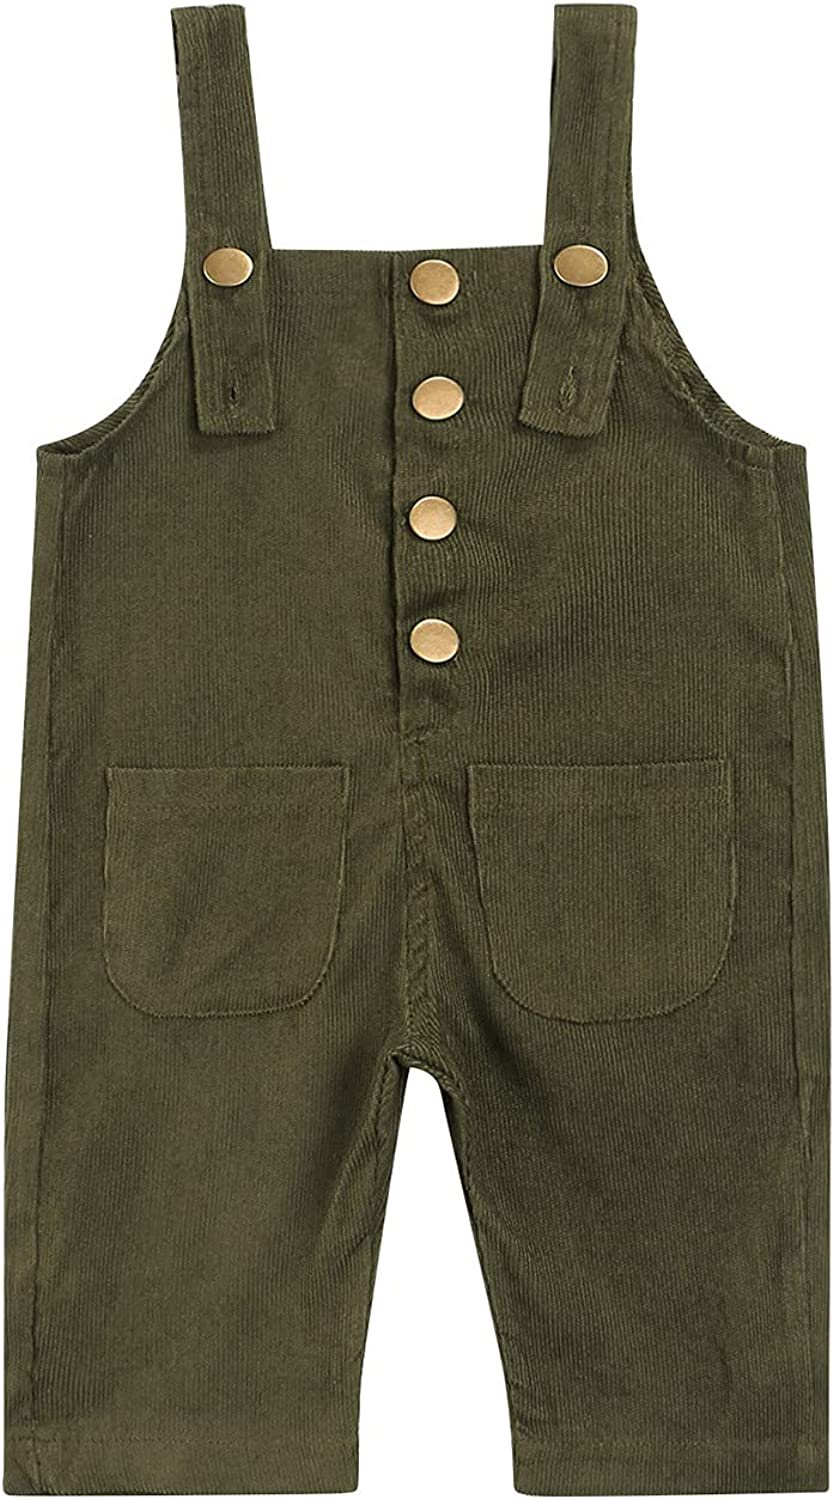 Infant Boy Girl Corduroy Bib Overalls Kids Autumn Solid Color Casual Suspender Pants with Pockets: Clothing, Shoes & Jewelry